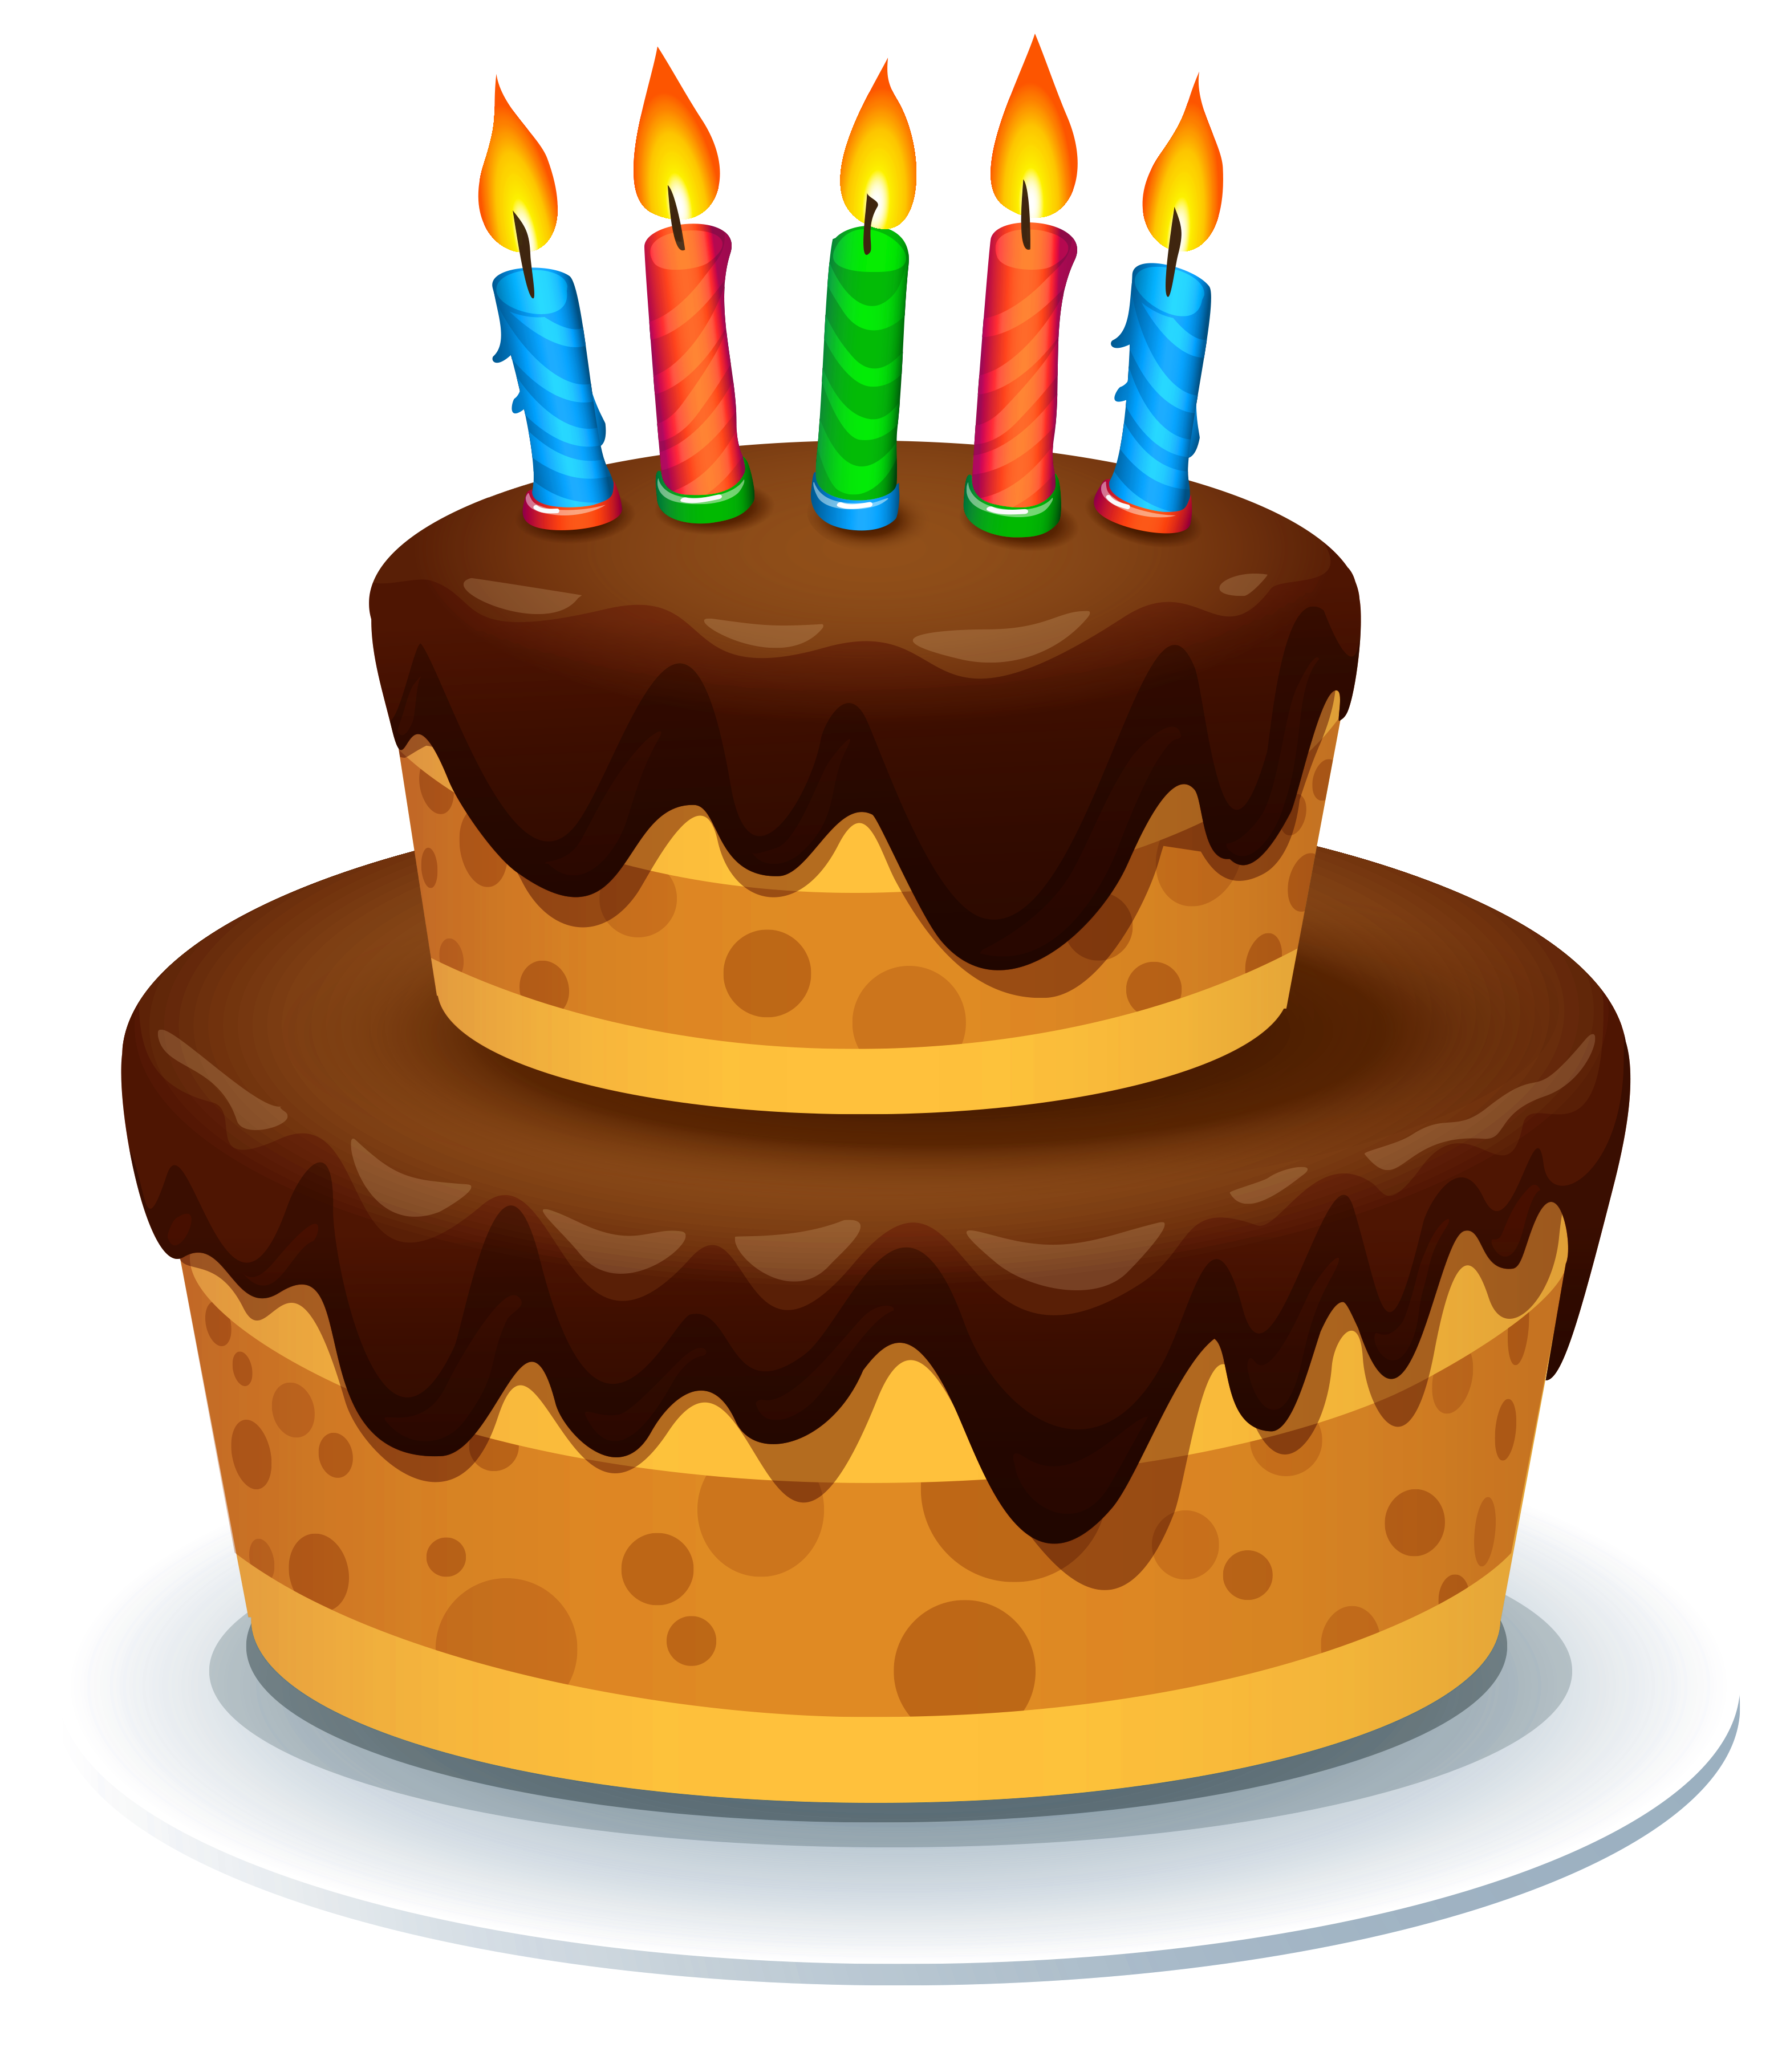 With candles png image. Cake clipart jpg transparent download